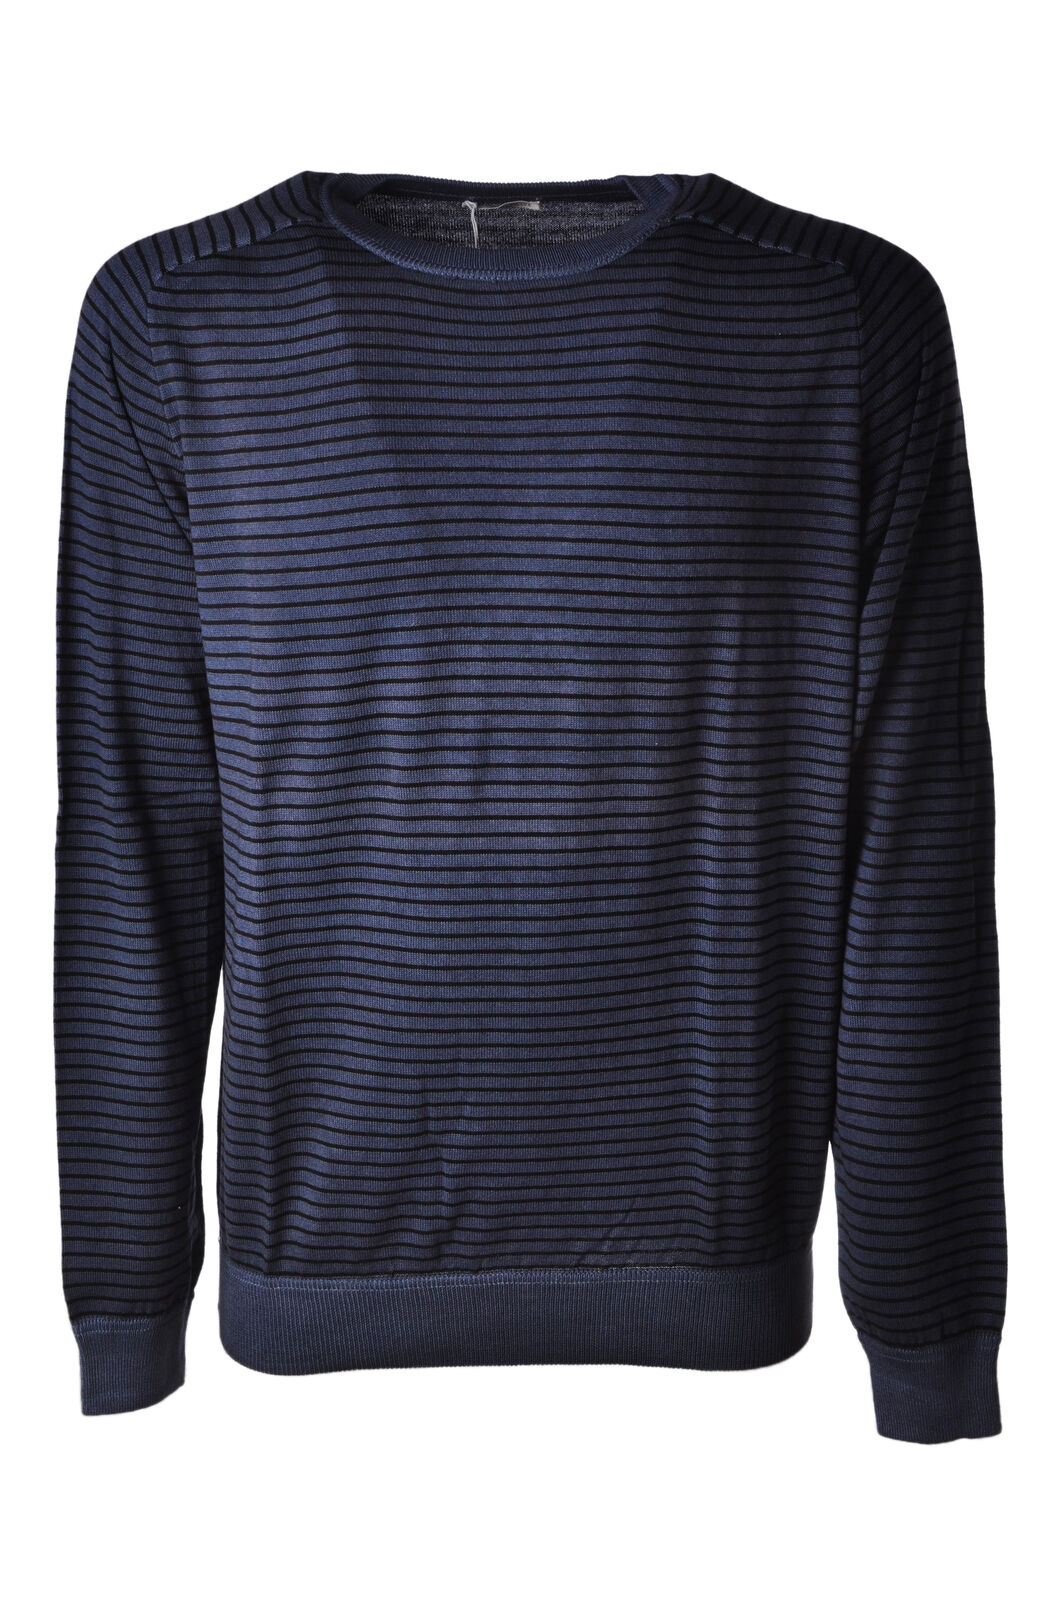 Heritage  -  Sweaters - Male - Blau - 4651419A185243